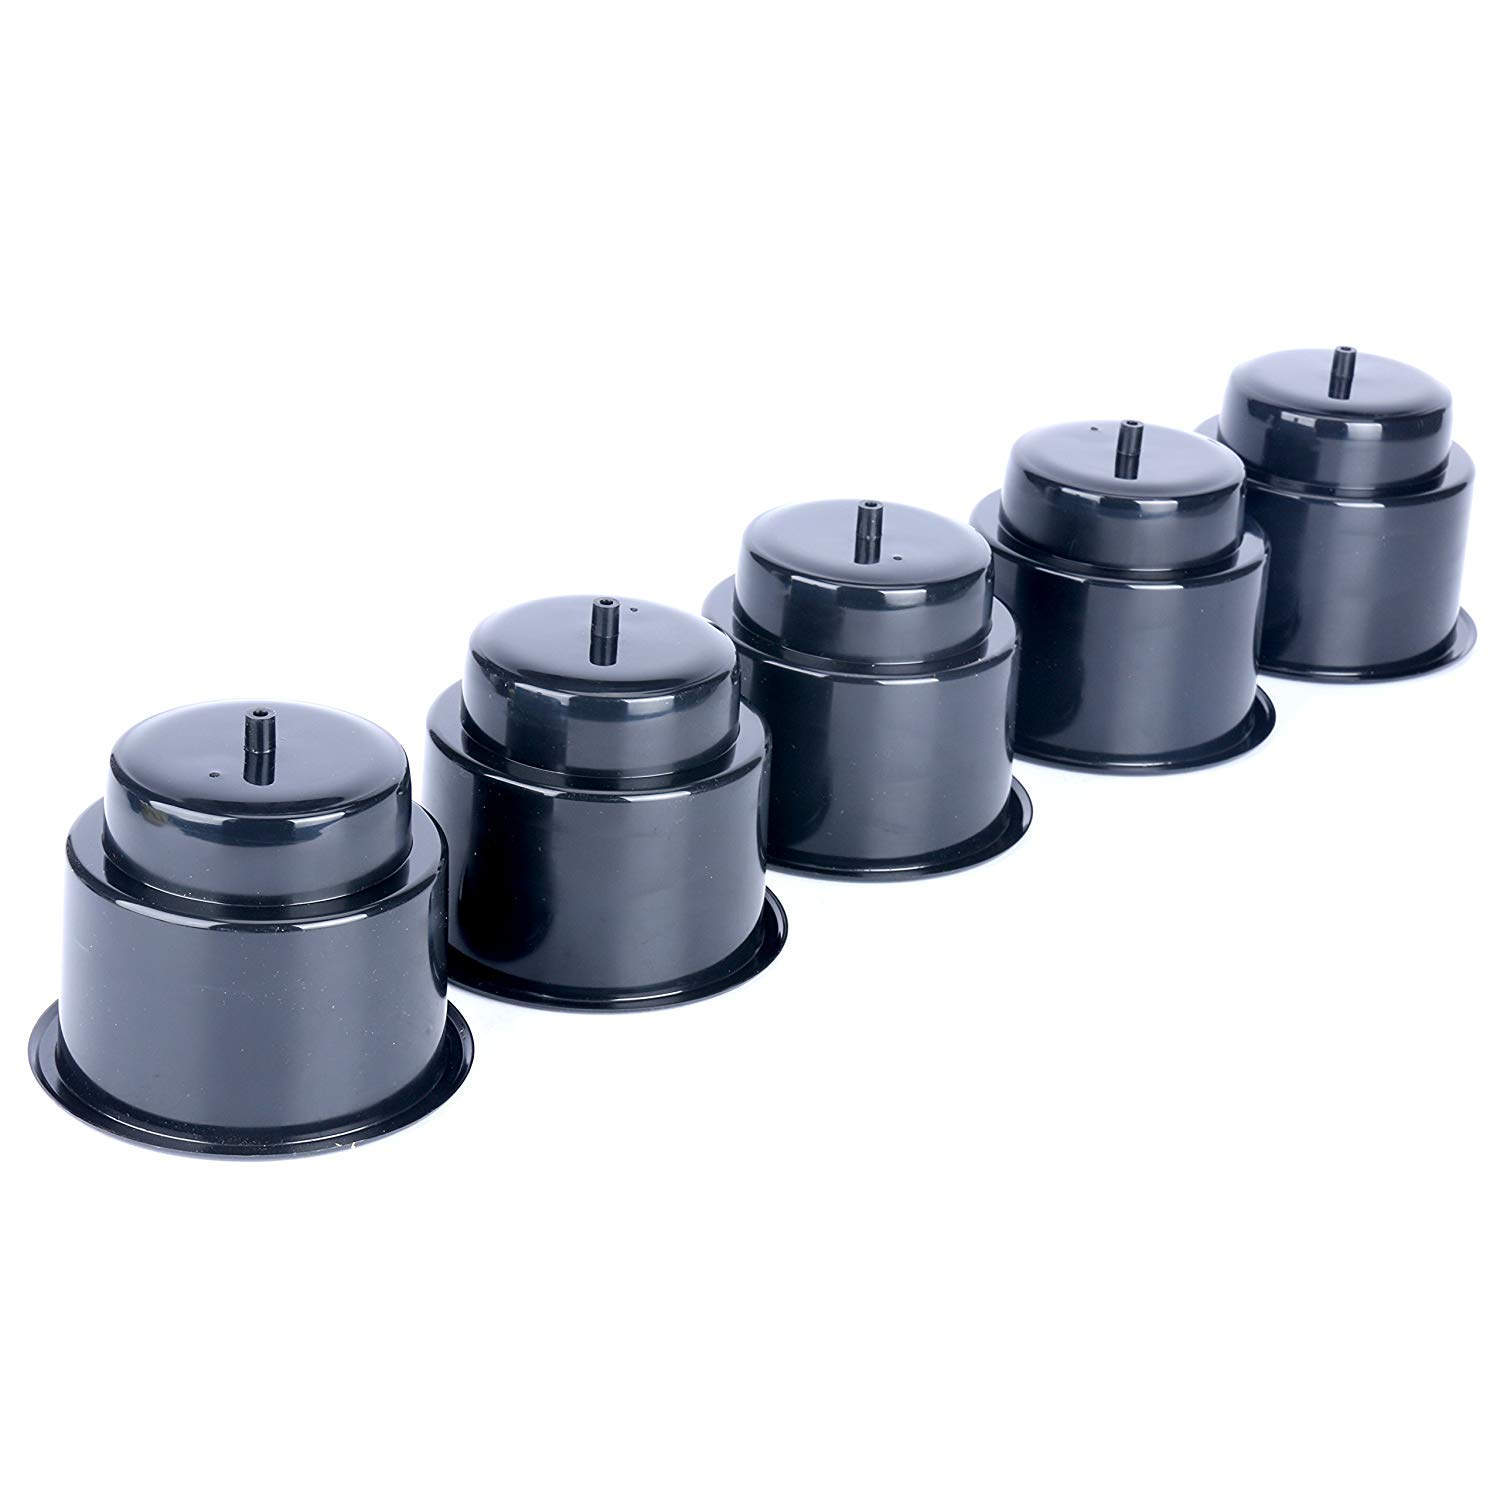 Black Recessed Drop in Plastic Cup Drink Can Holder with Drain for Boat Car Marine Rv Black Set of 5 Amarine Made